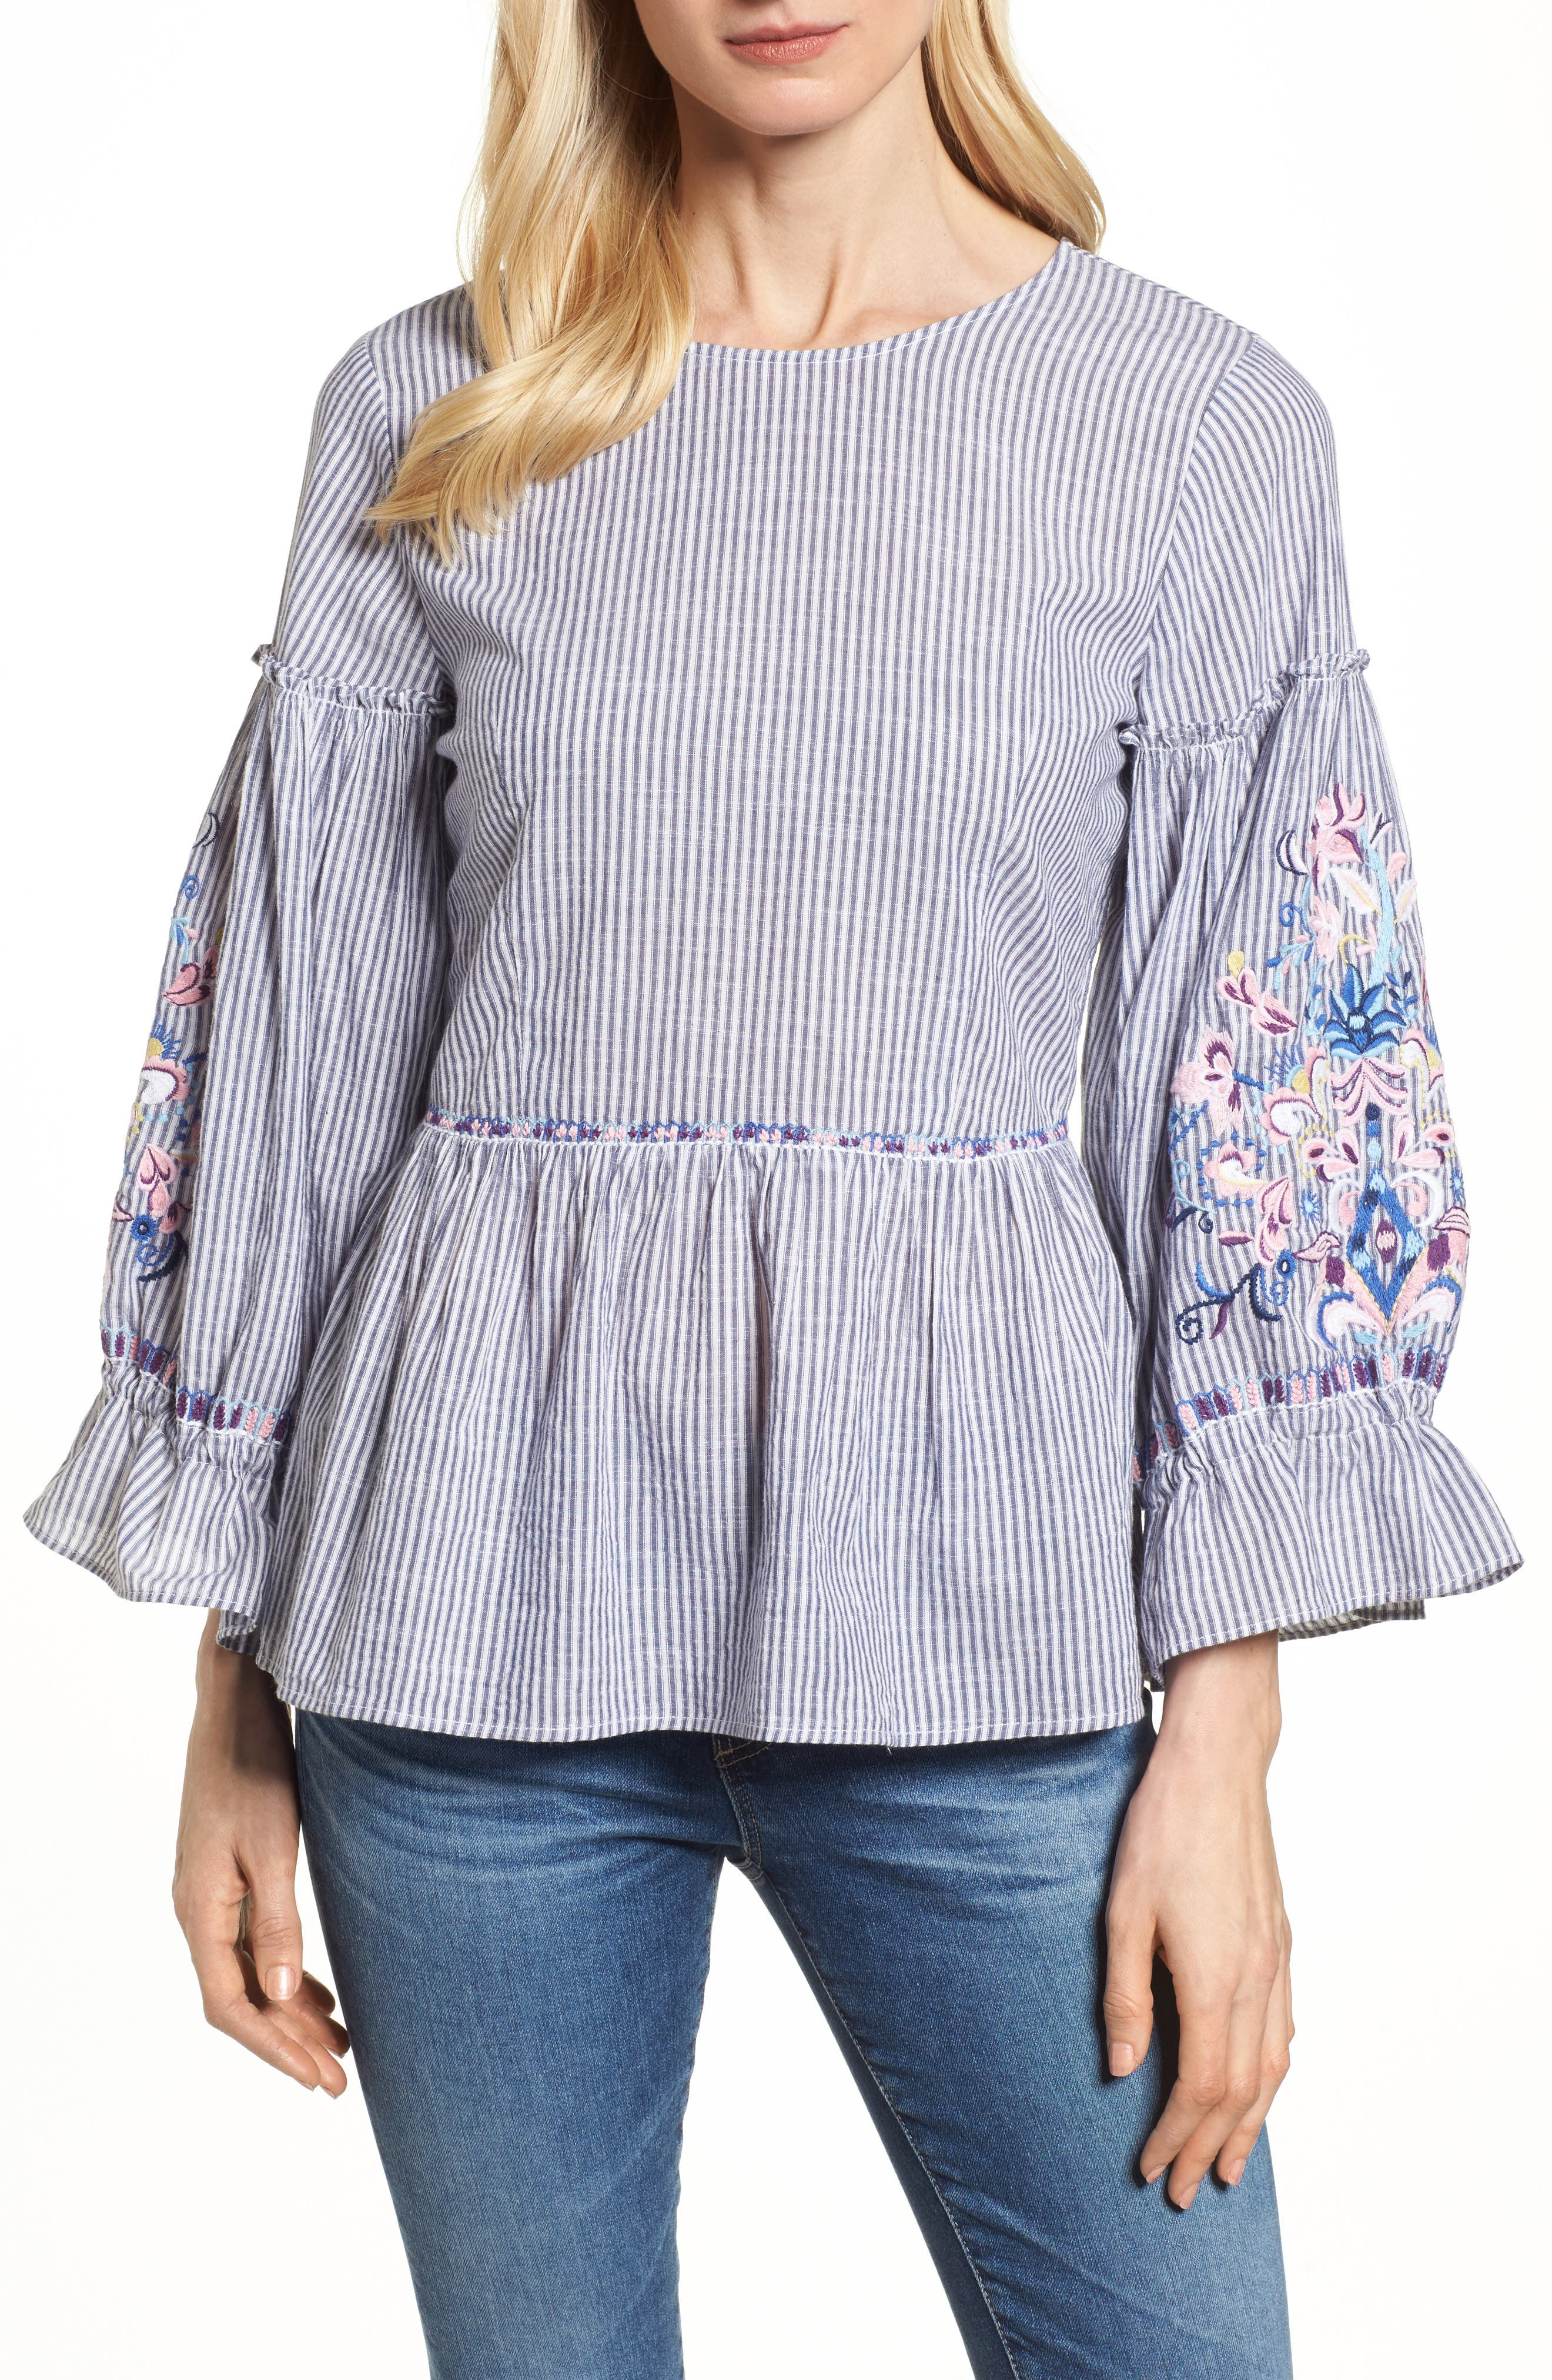 Embroidered Sleeve Top,                             Main thumbnail 1, color,                             Blue-White